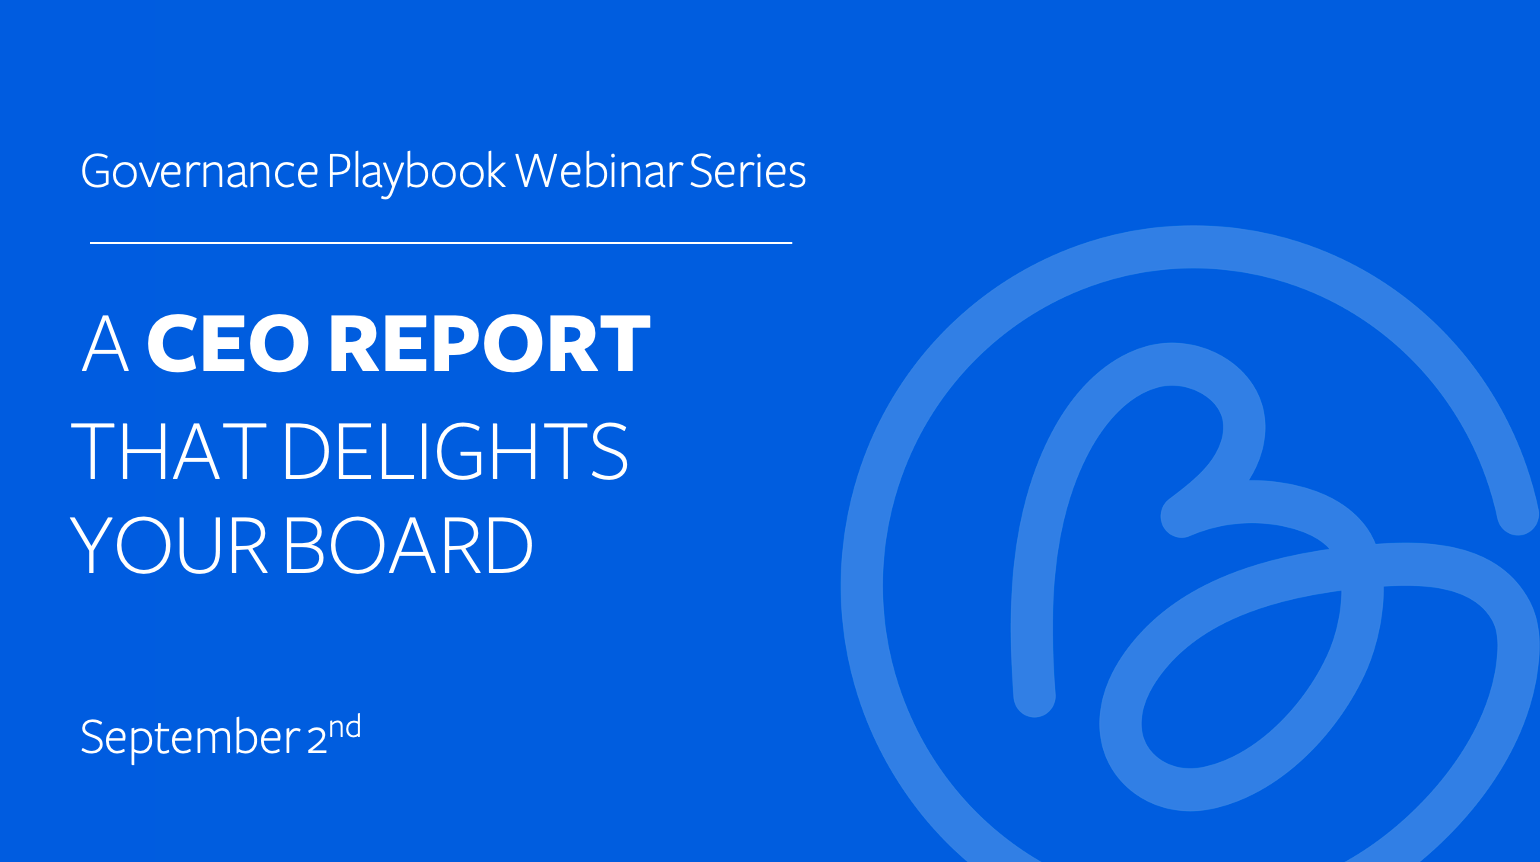 Create a CEO report that delights your board